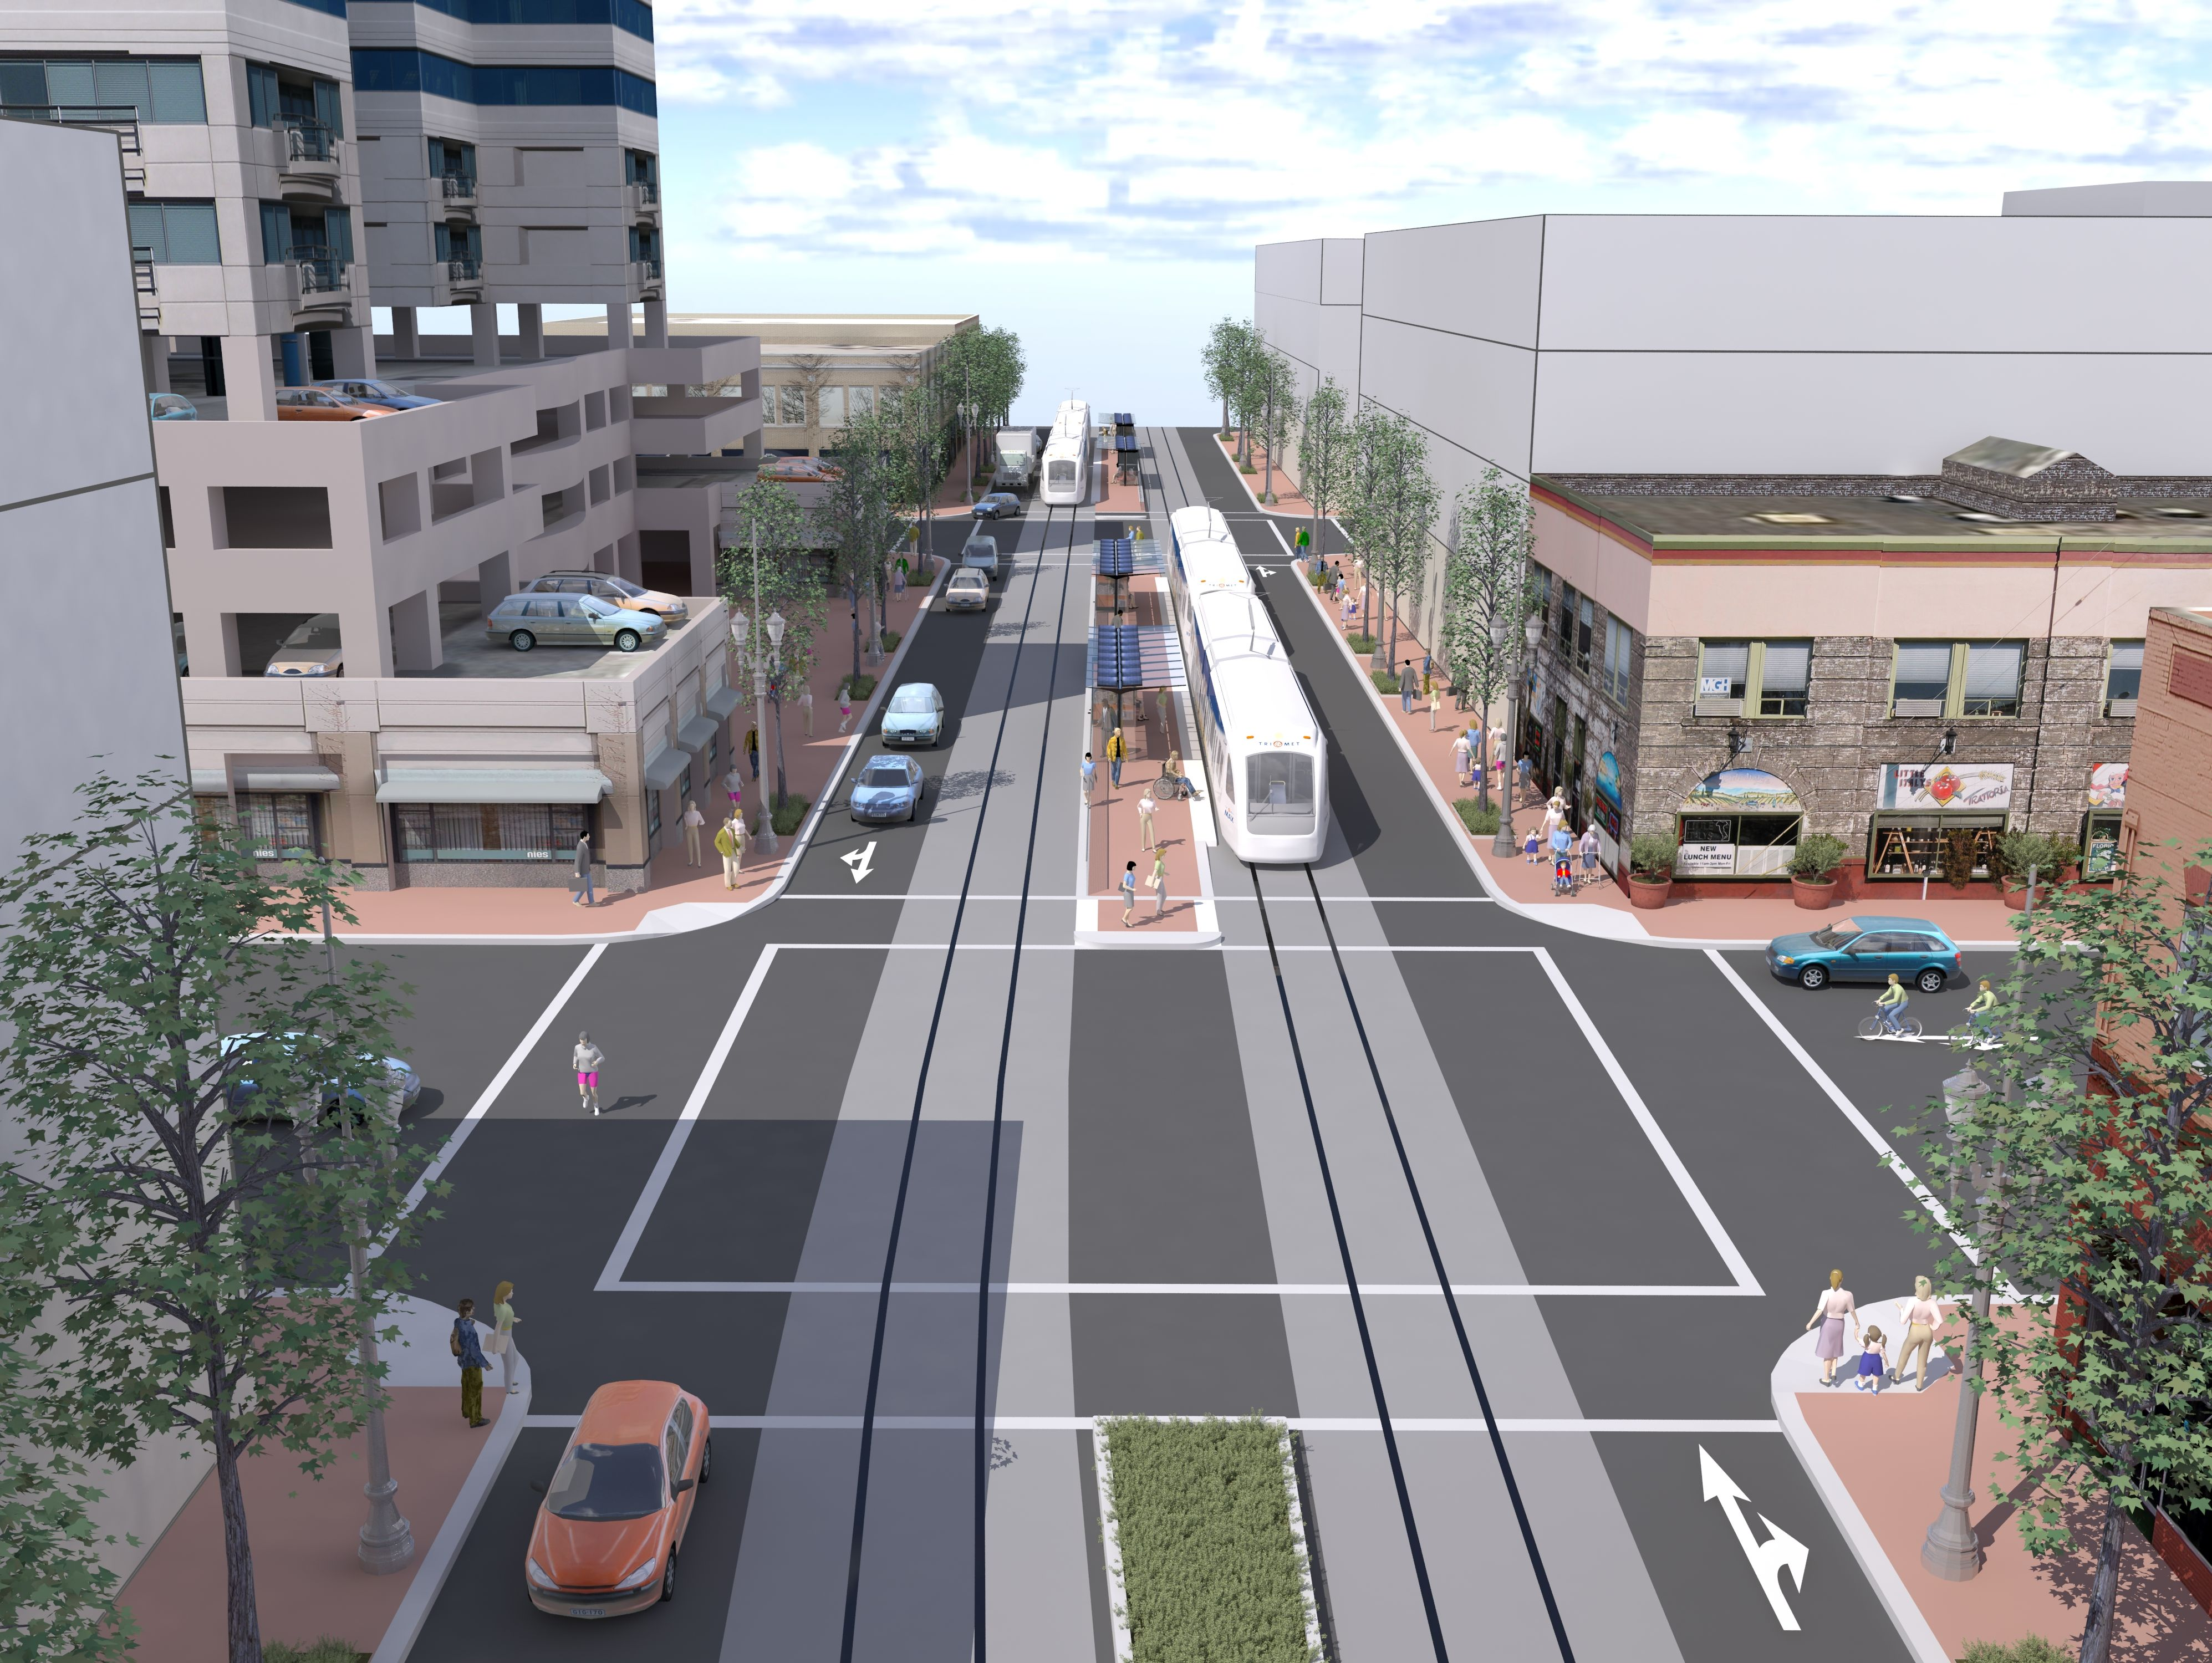 A rendering of one of the light rail designs associated